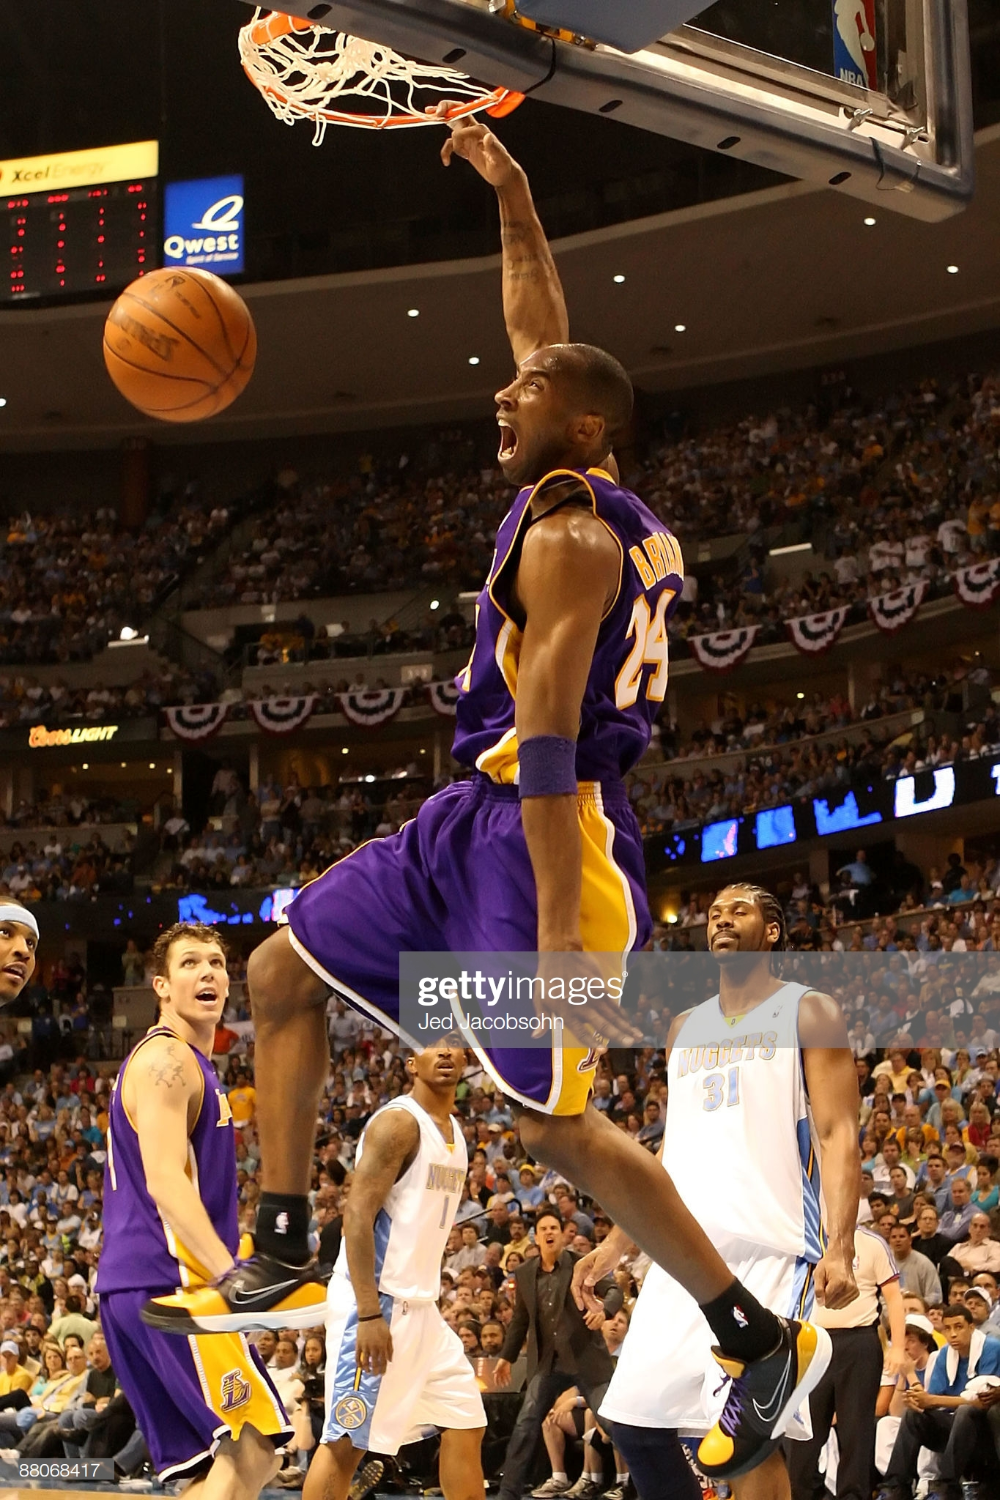 Kobe Bryant Of The Los Angeles Lakers Dunks The Ball In The Second In 2020 Kobe Bryant Kobe Bryant Black Mamba Kobe Bryant Pictures